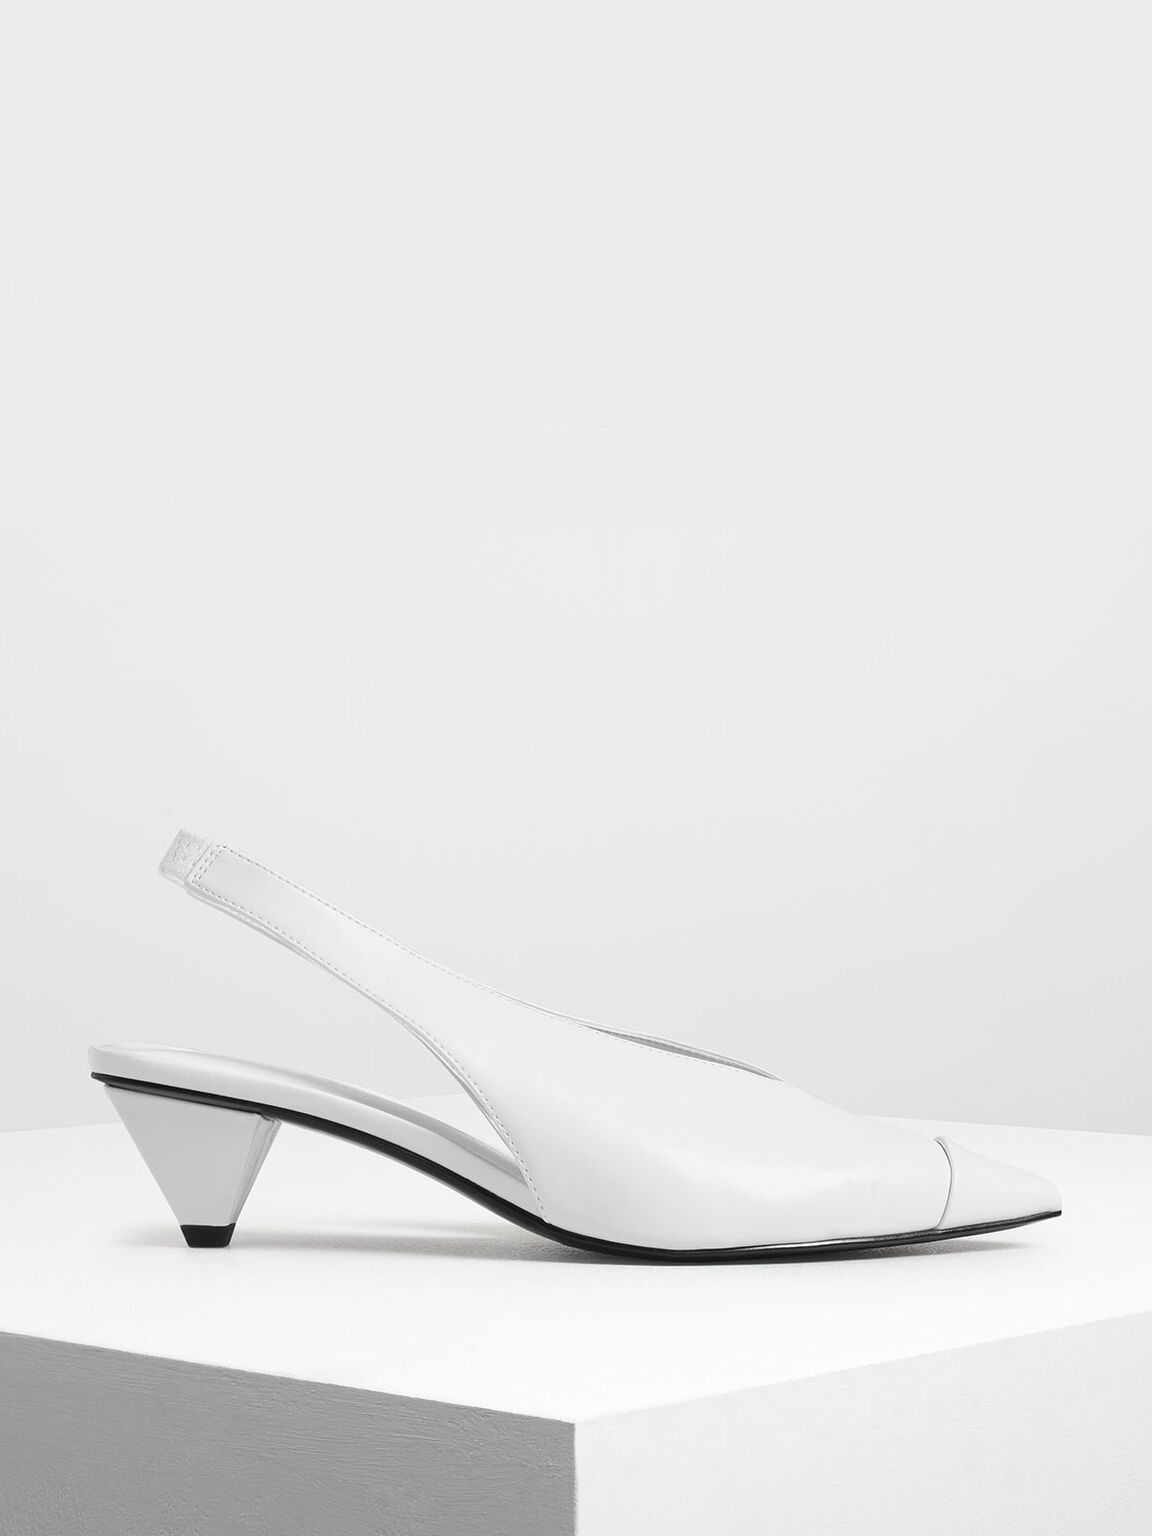 Cone Heel Slingback Pumps, White, hi-res